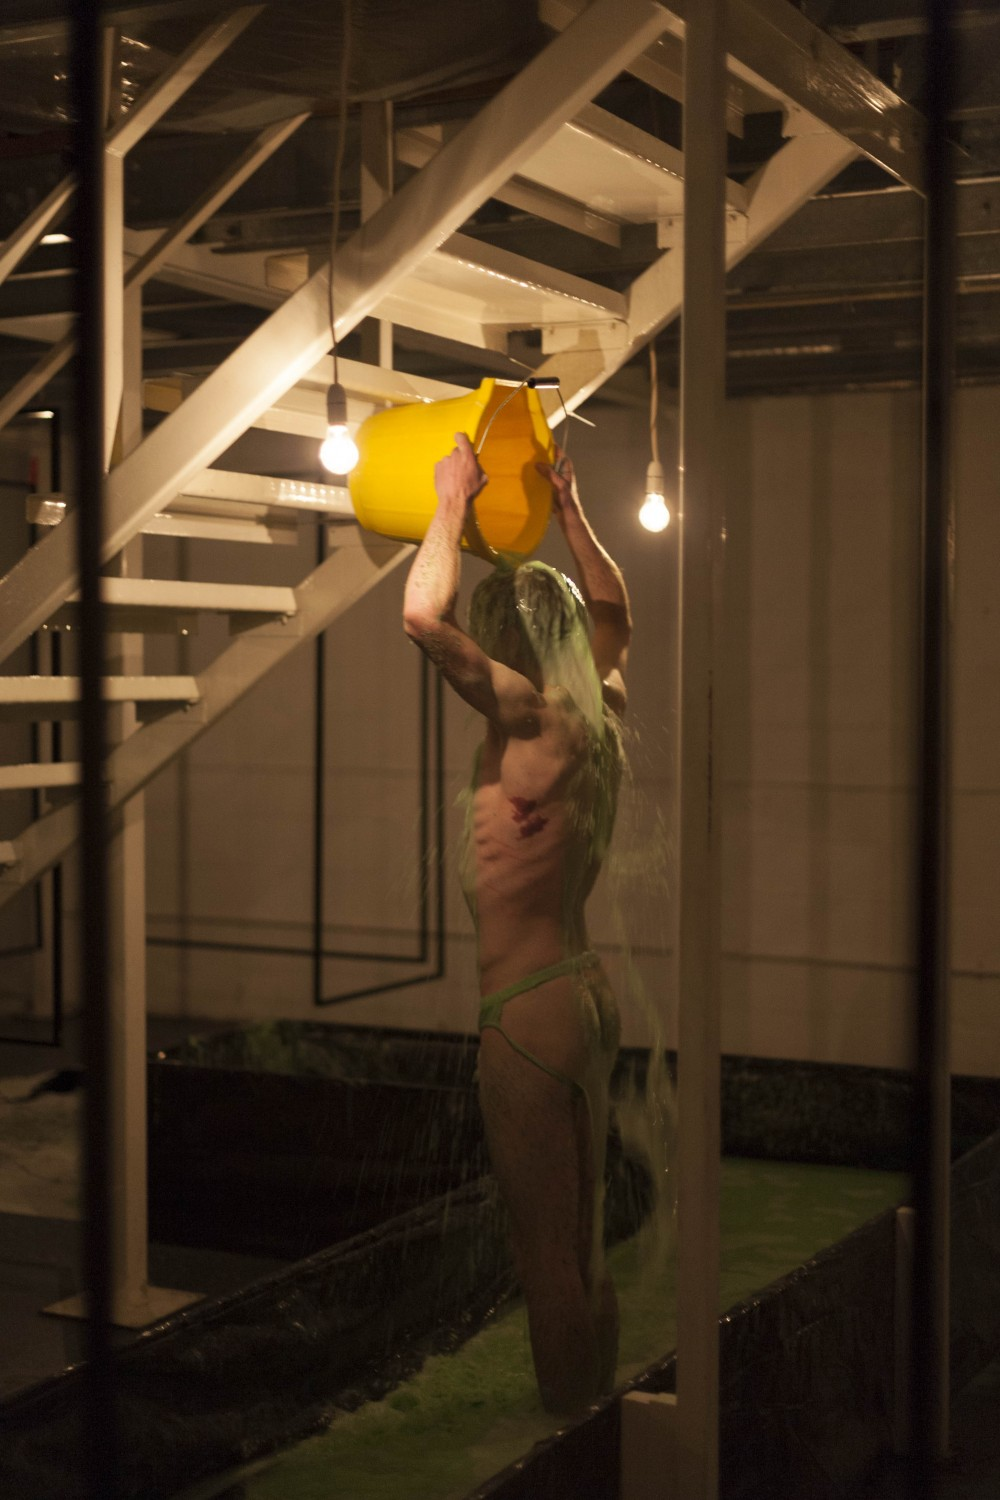 A man stands naked, holding a yellow bucket above his head. He is pouring green slim over himself.